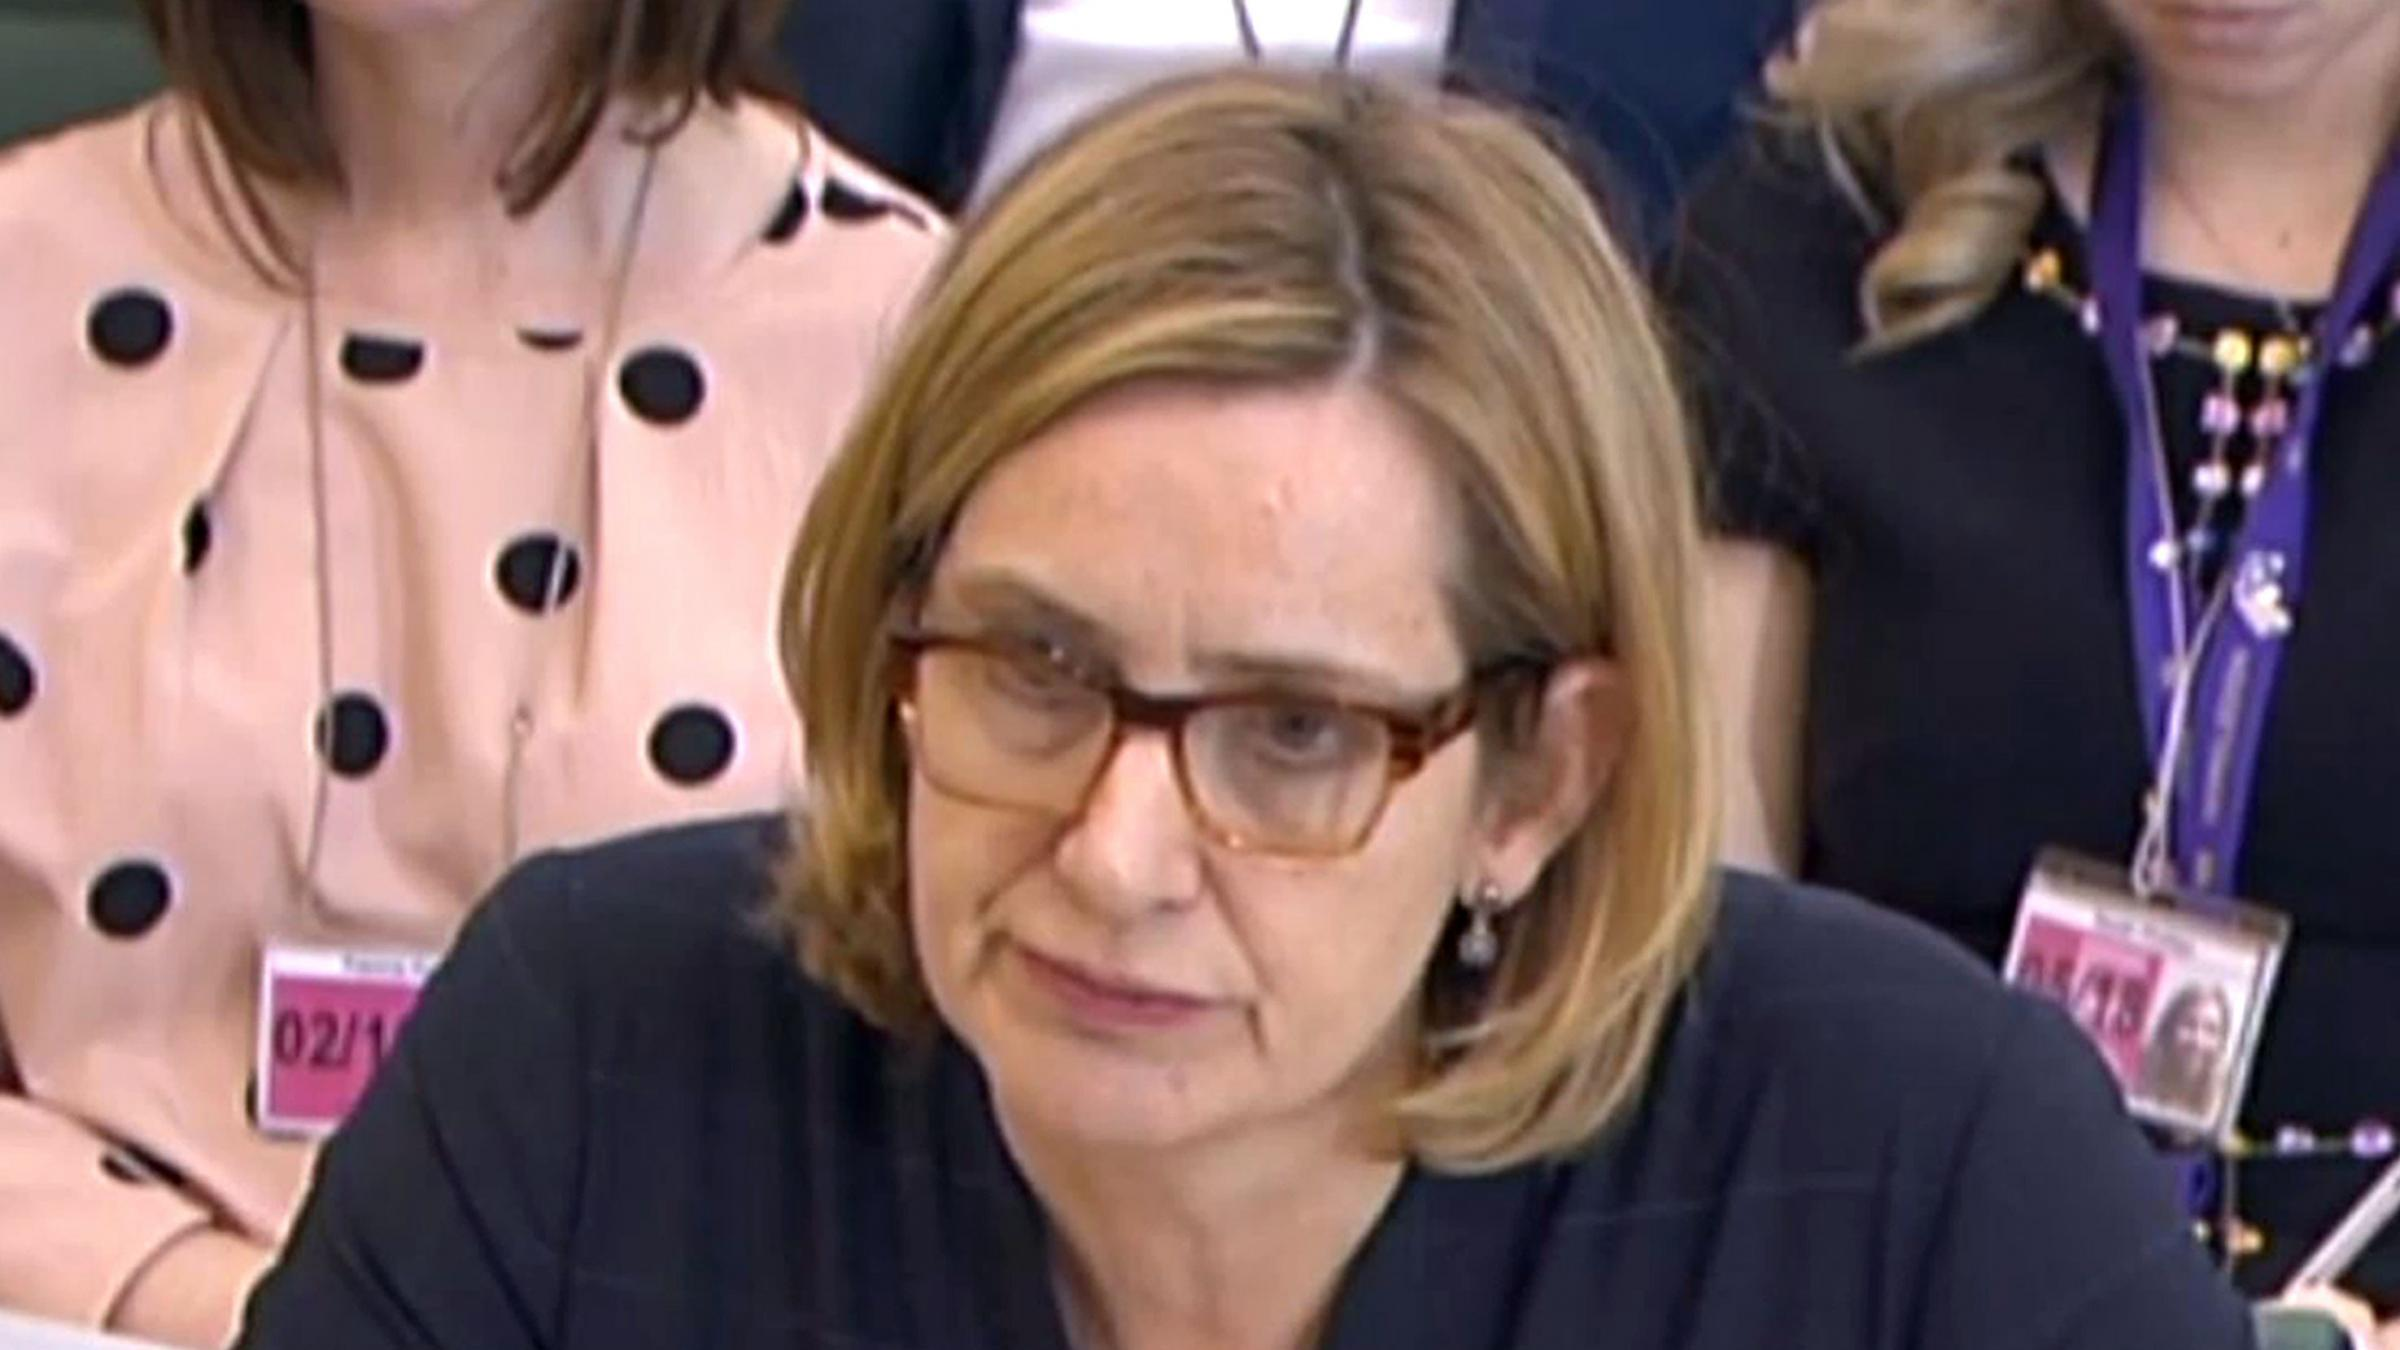 Home Secretary regrets failing to see scope of Windrush scandal sooner